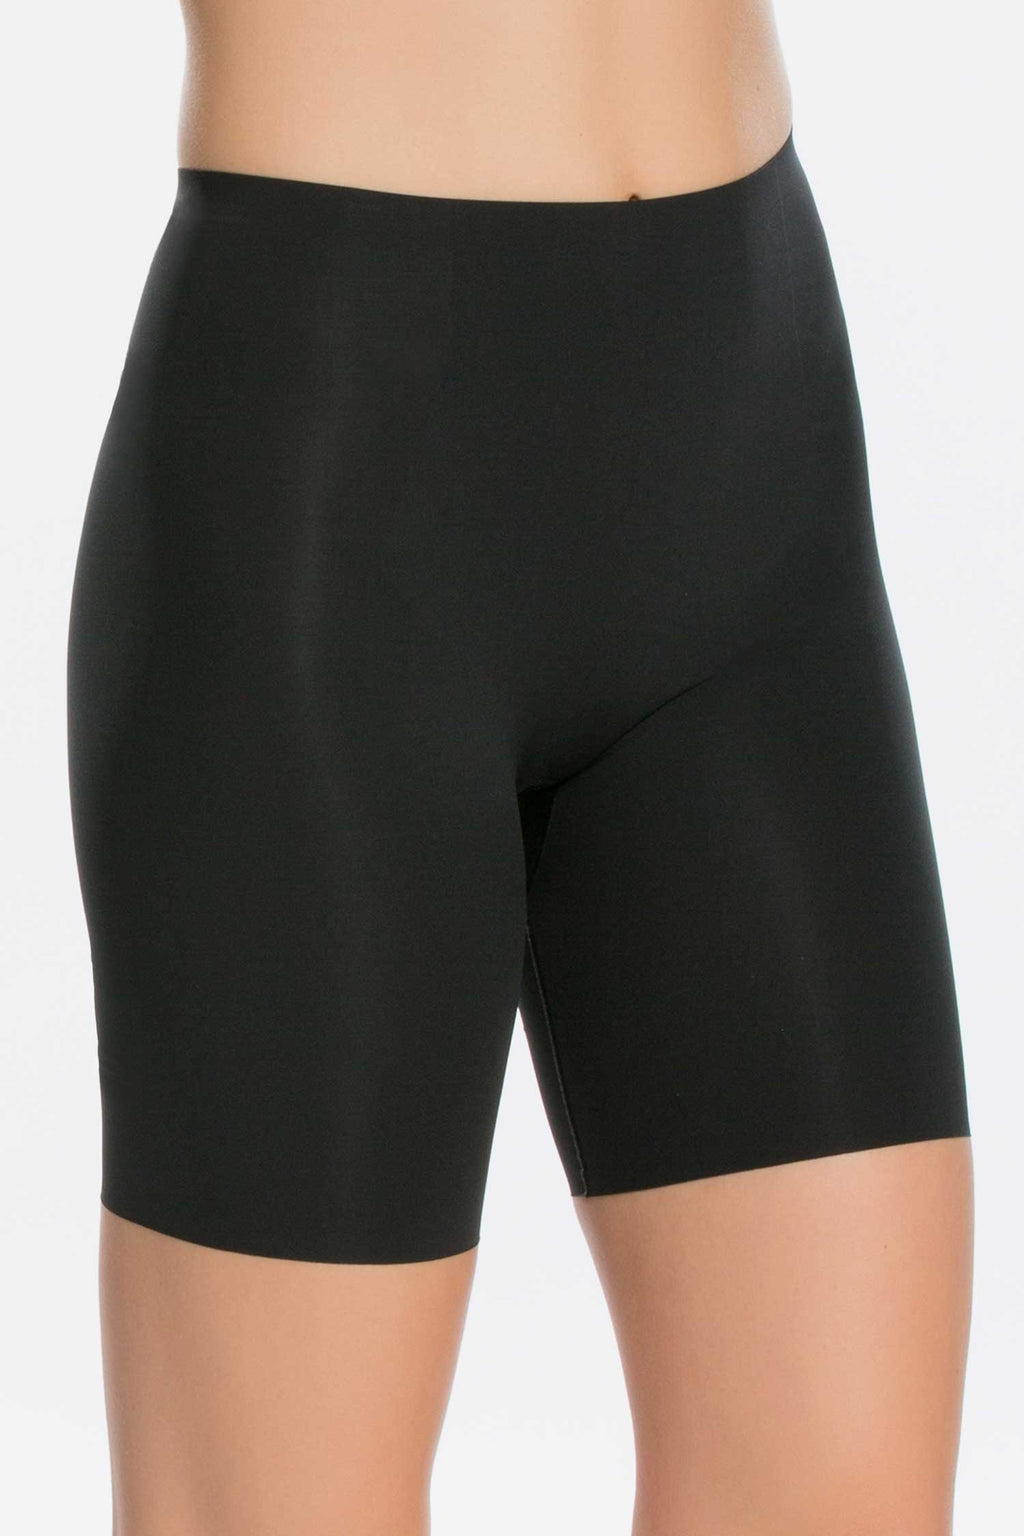 SPANX Thinstincts Girl Short Schwarz Vorne